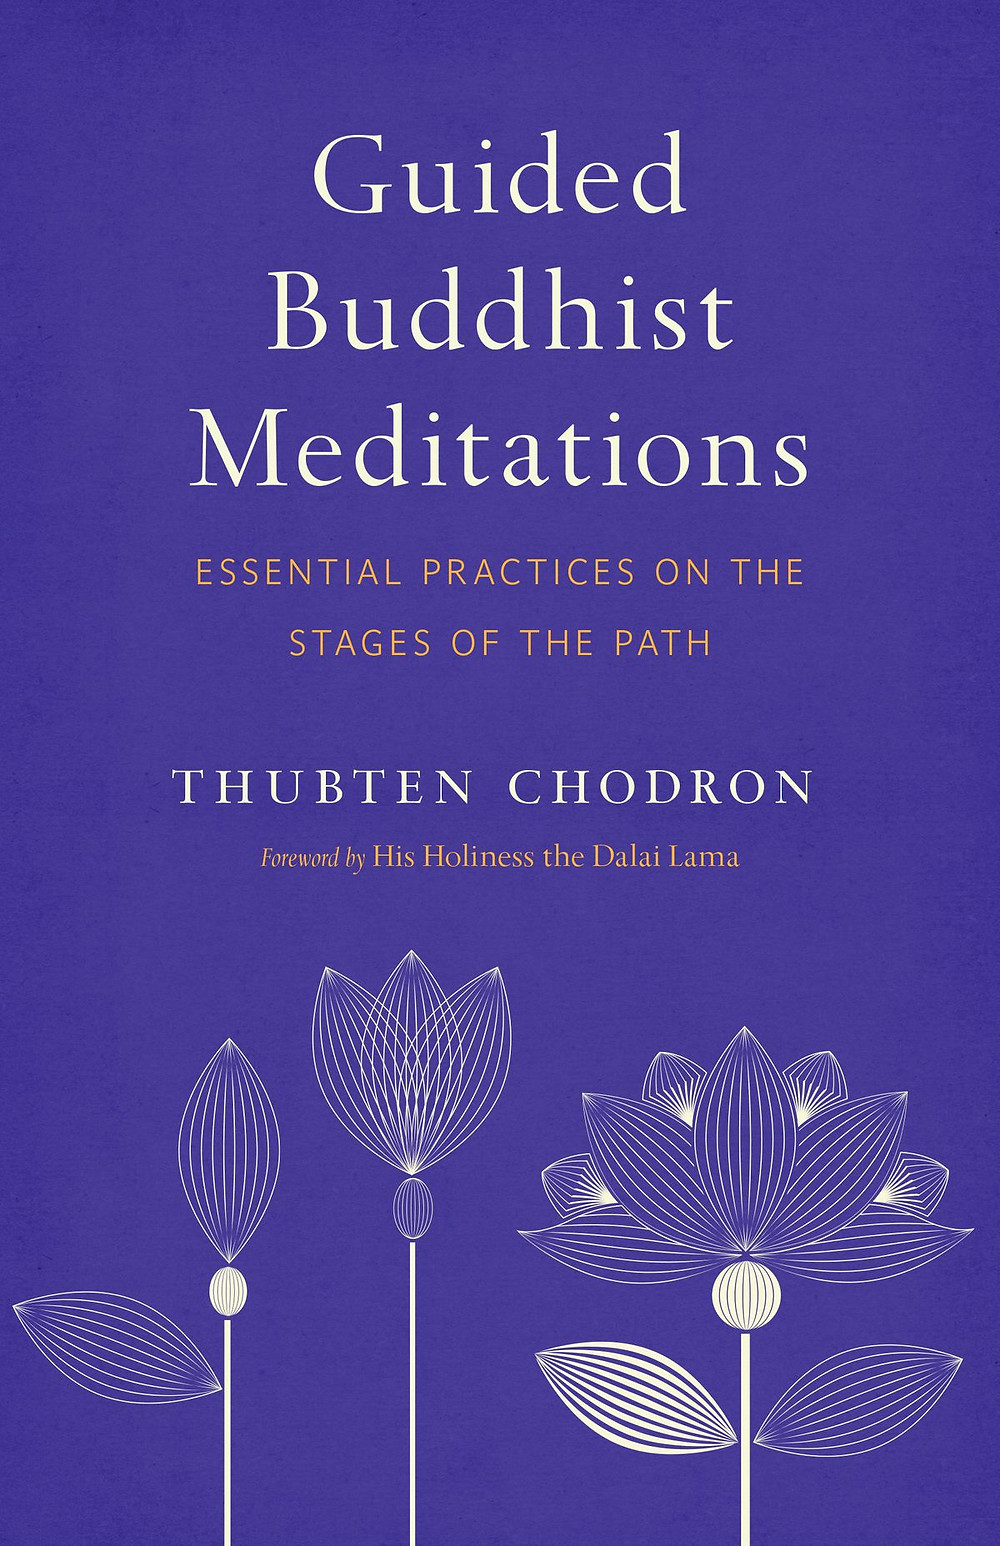 Guided Buddhist Meditations. Essential Practices on the Stages of the Path by Thubten Chodron